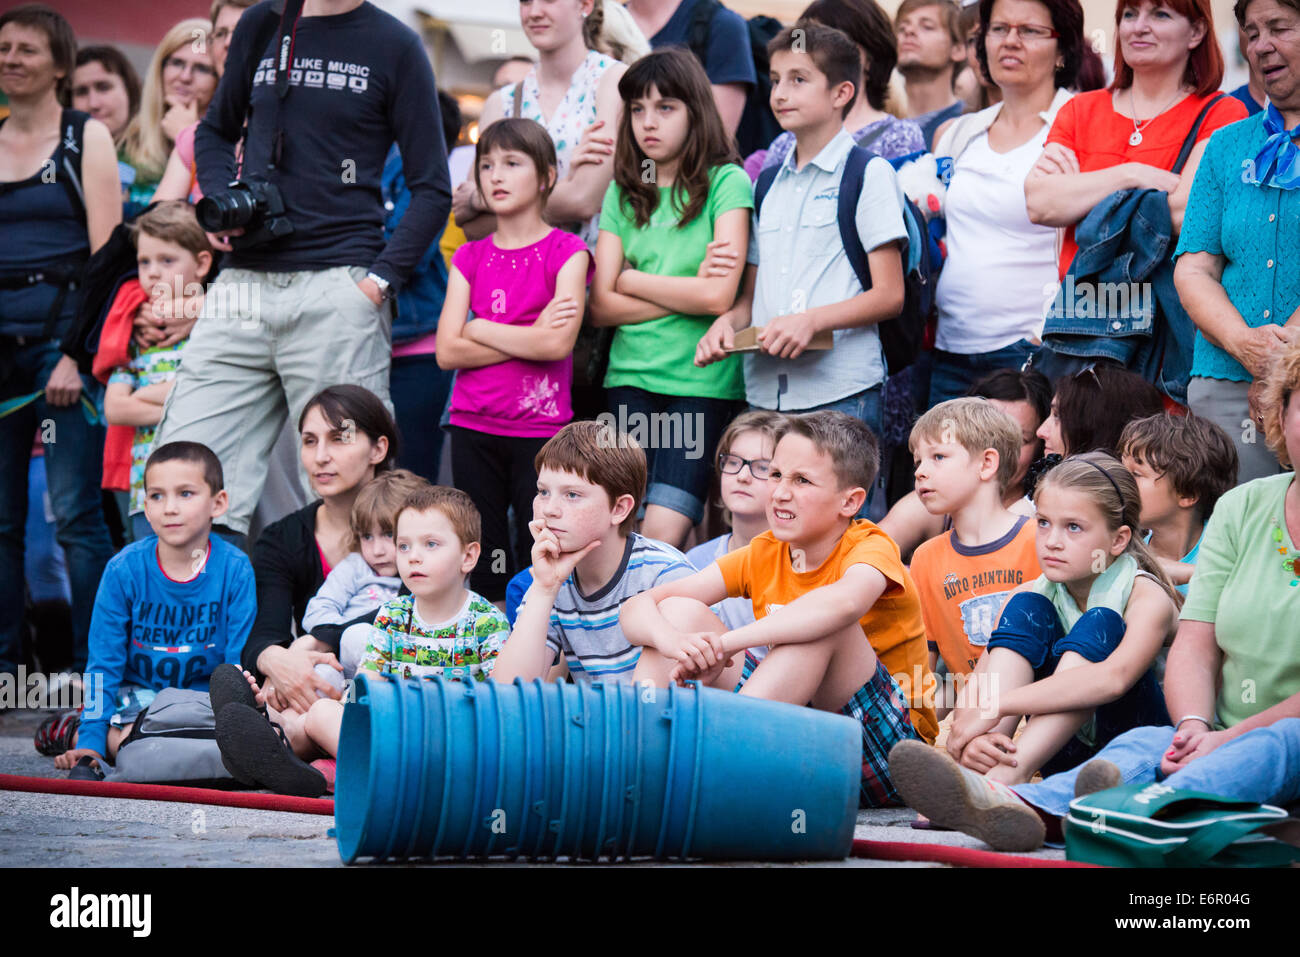 Audience at The Incredible Box, street theatre performance by Cia La Tal at Festival Lent, Maribor, Slovenia, June - Stock Image